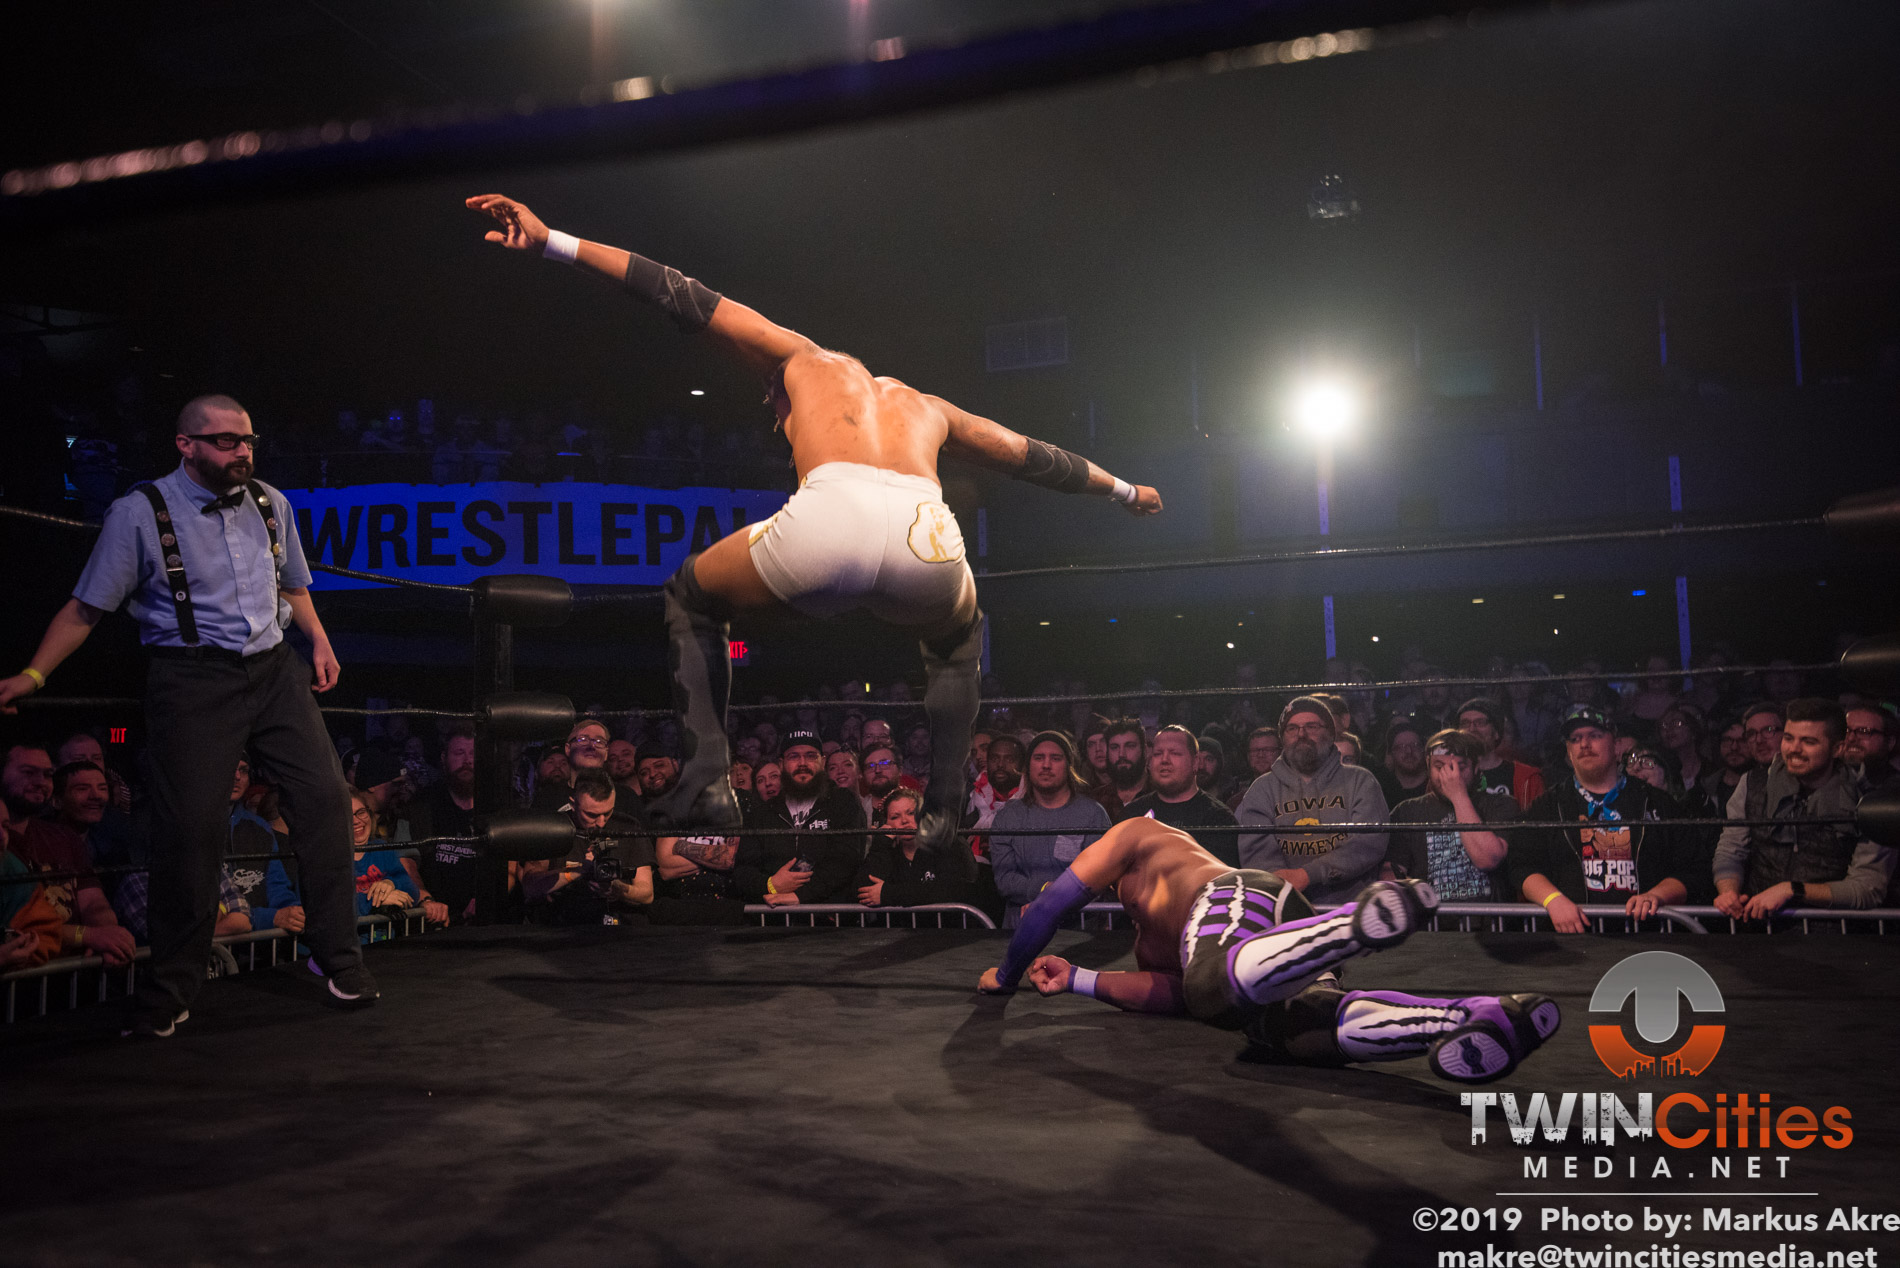 Wrestlepalooza - Match 6-2